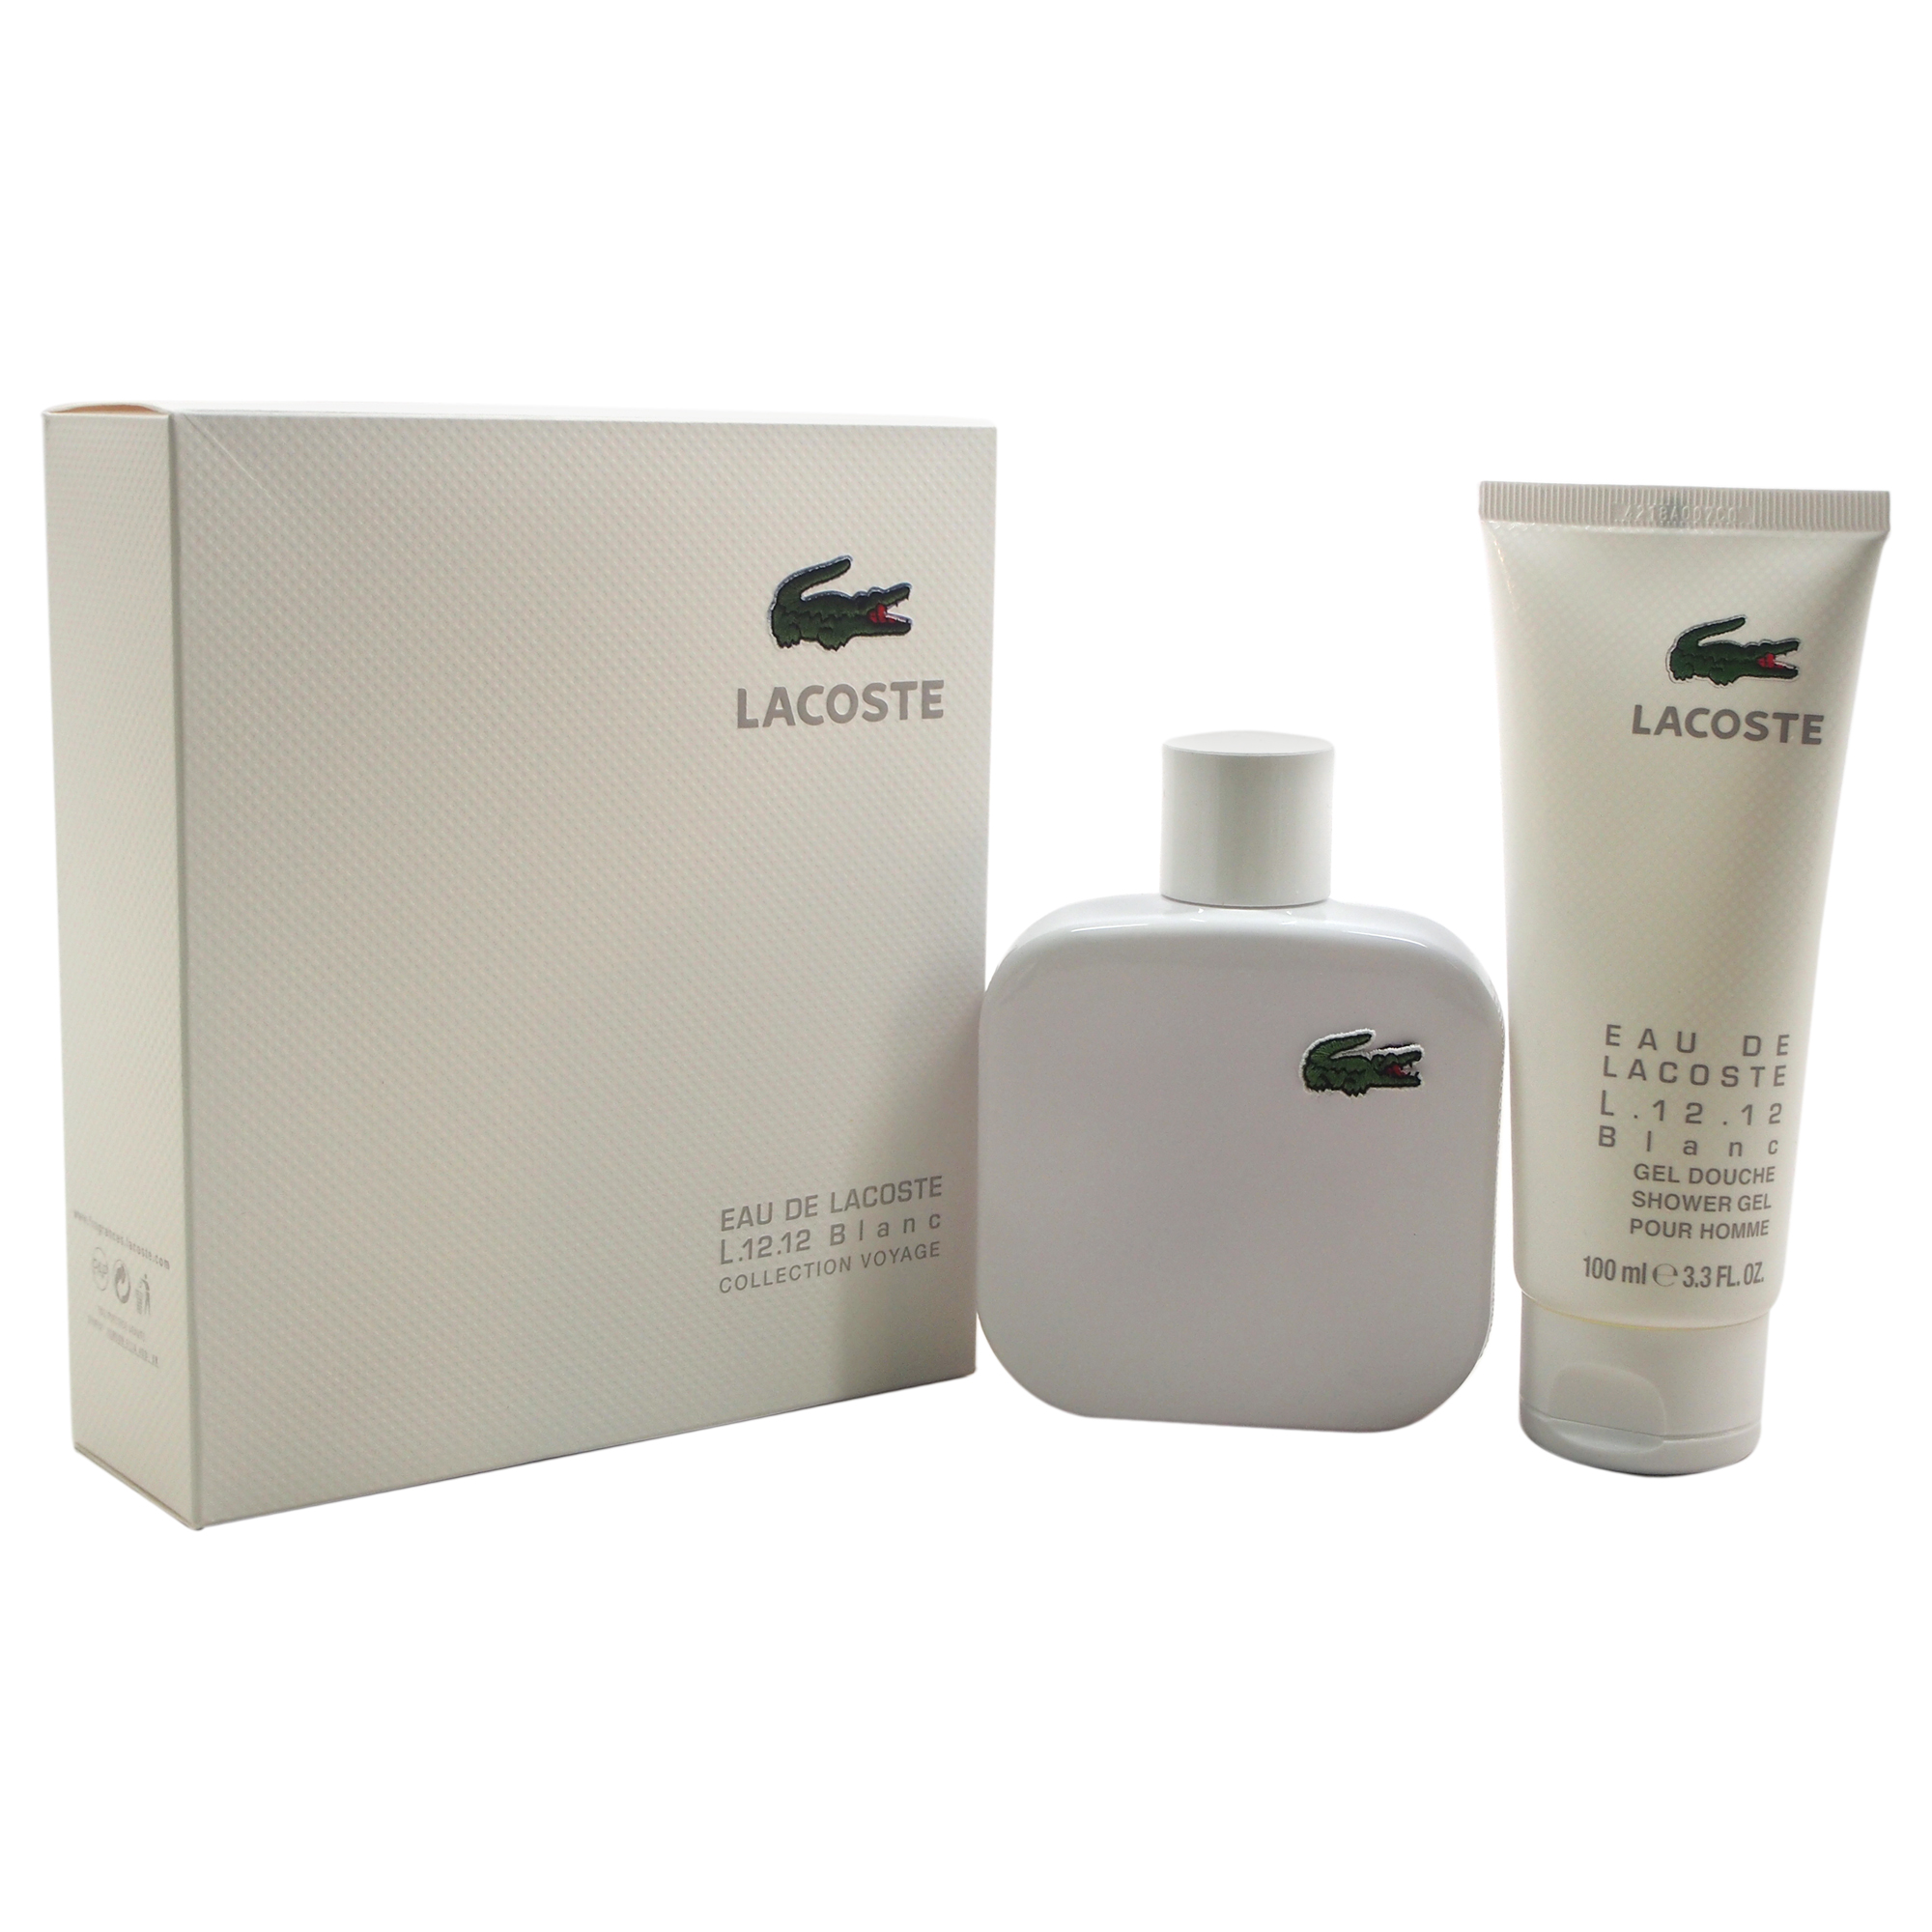 EAU DE LACOSTE L.12.12 BLANC 2PC GIFT SETS FOR MEN Image